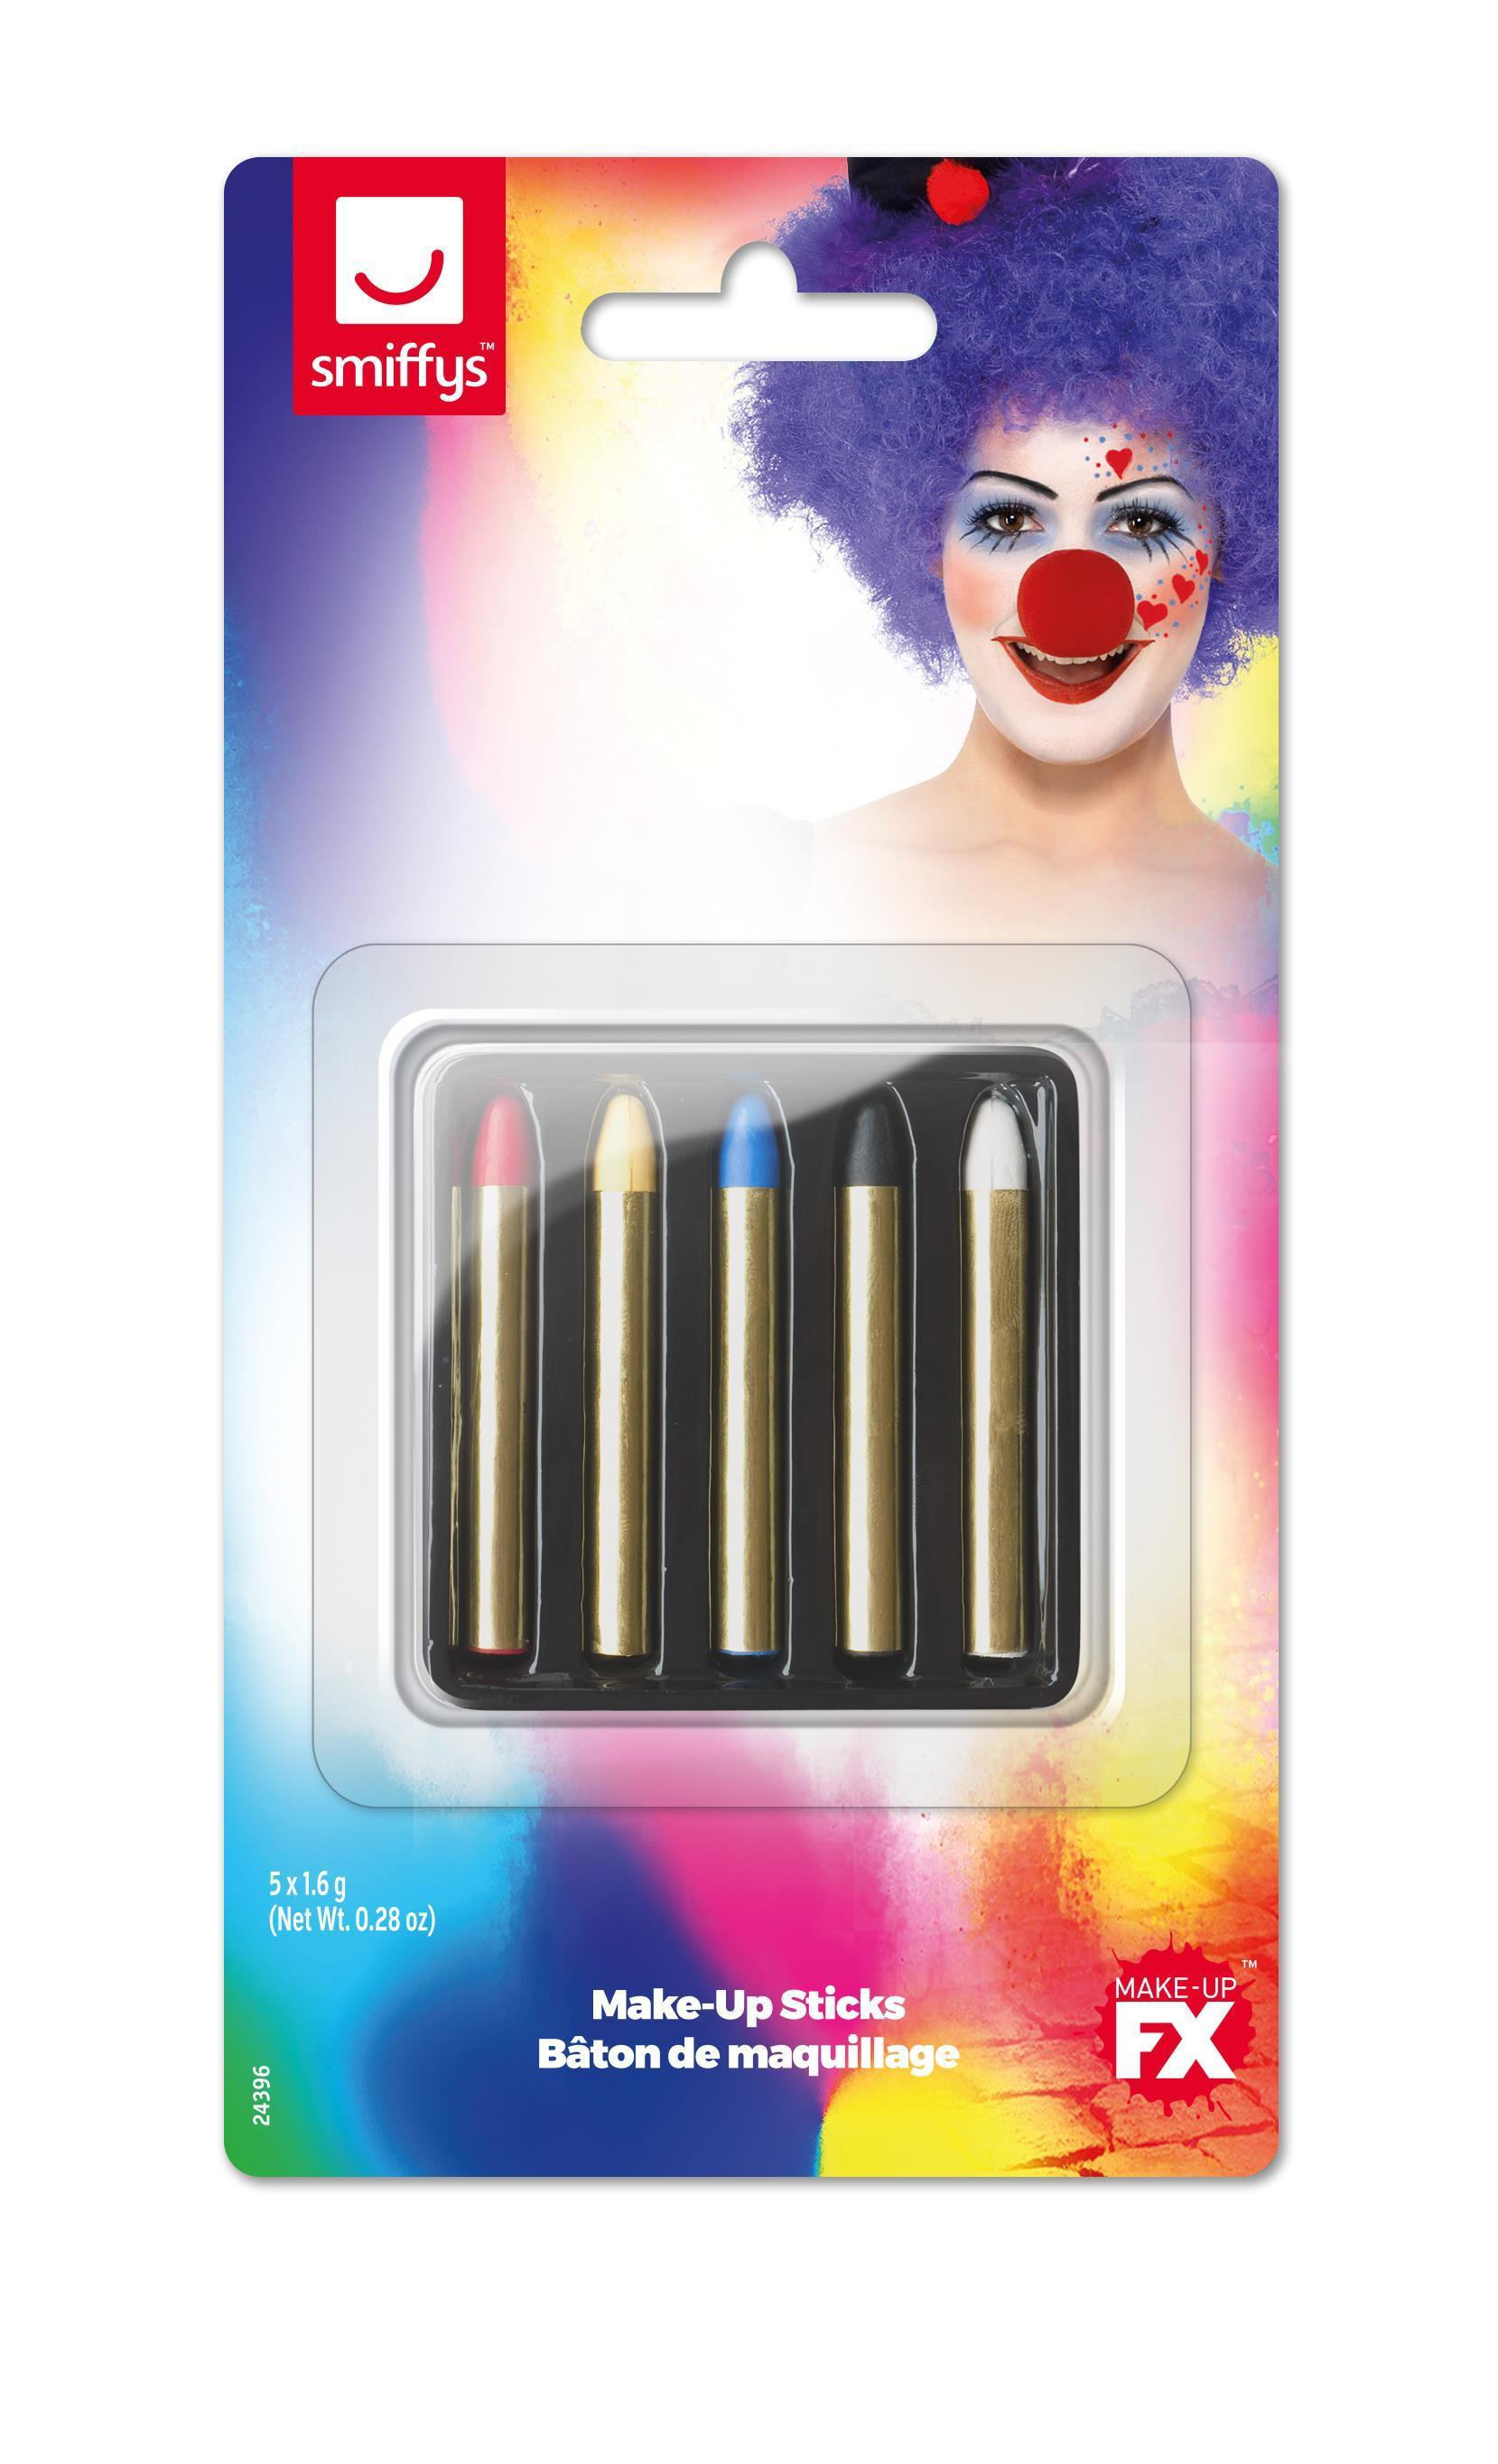 Smiffys Make-Up Sticks in 5 Colours